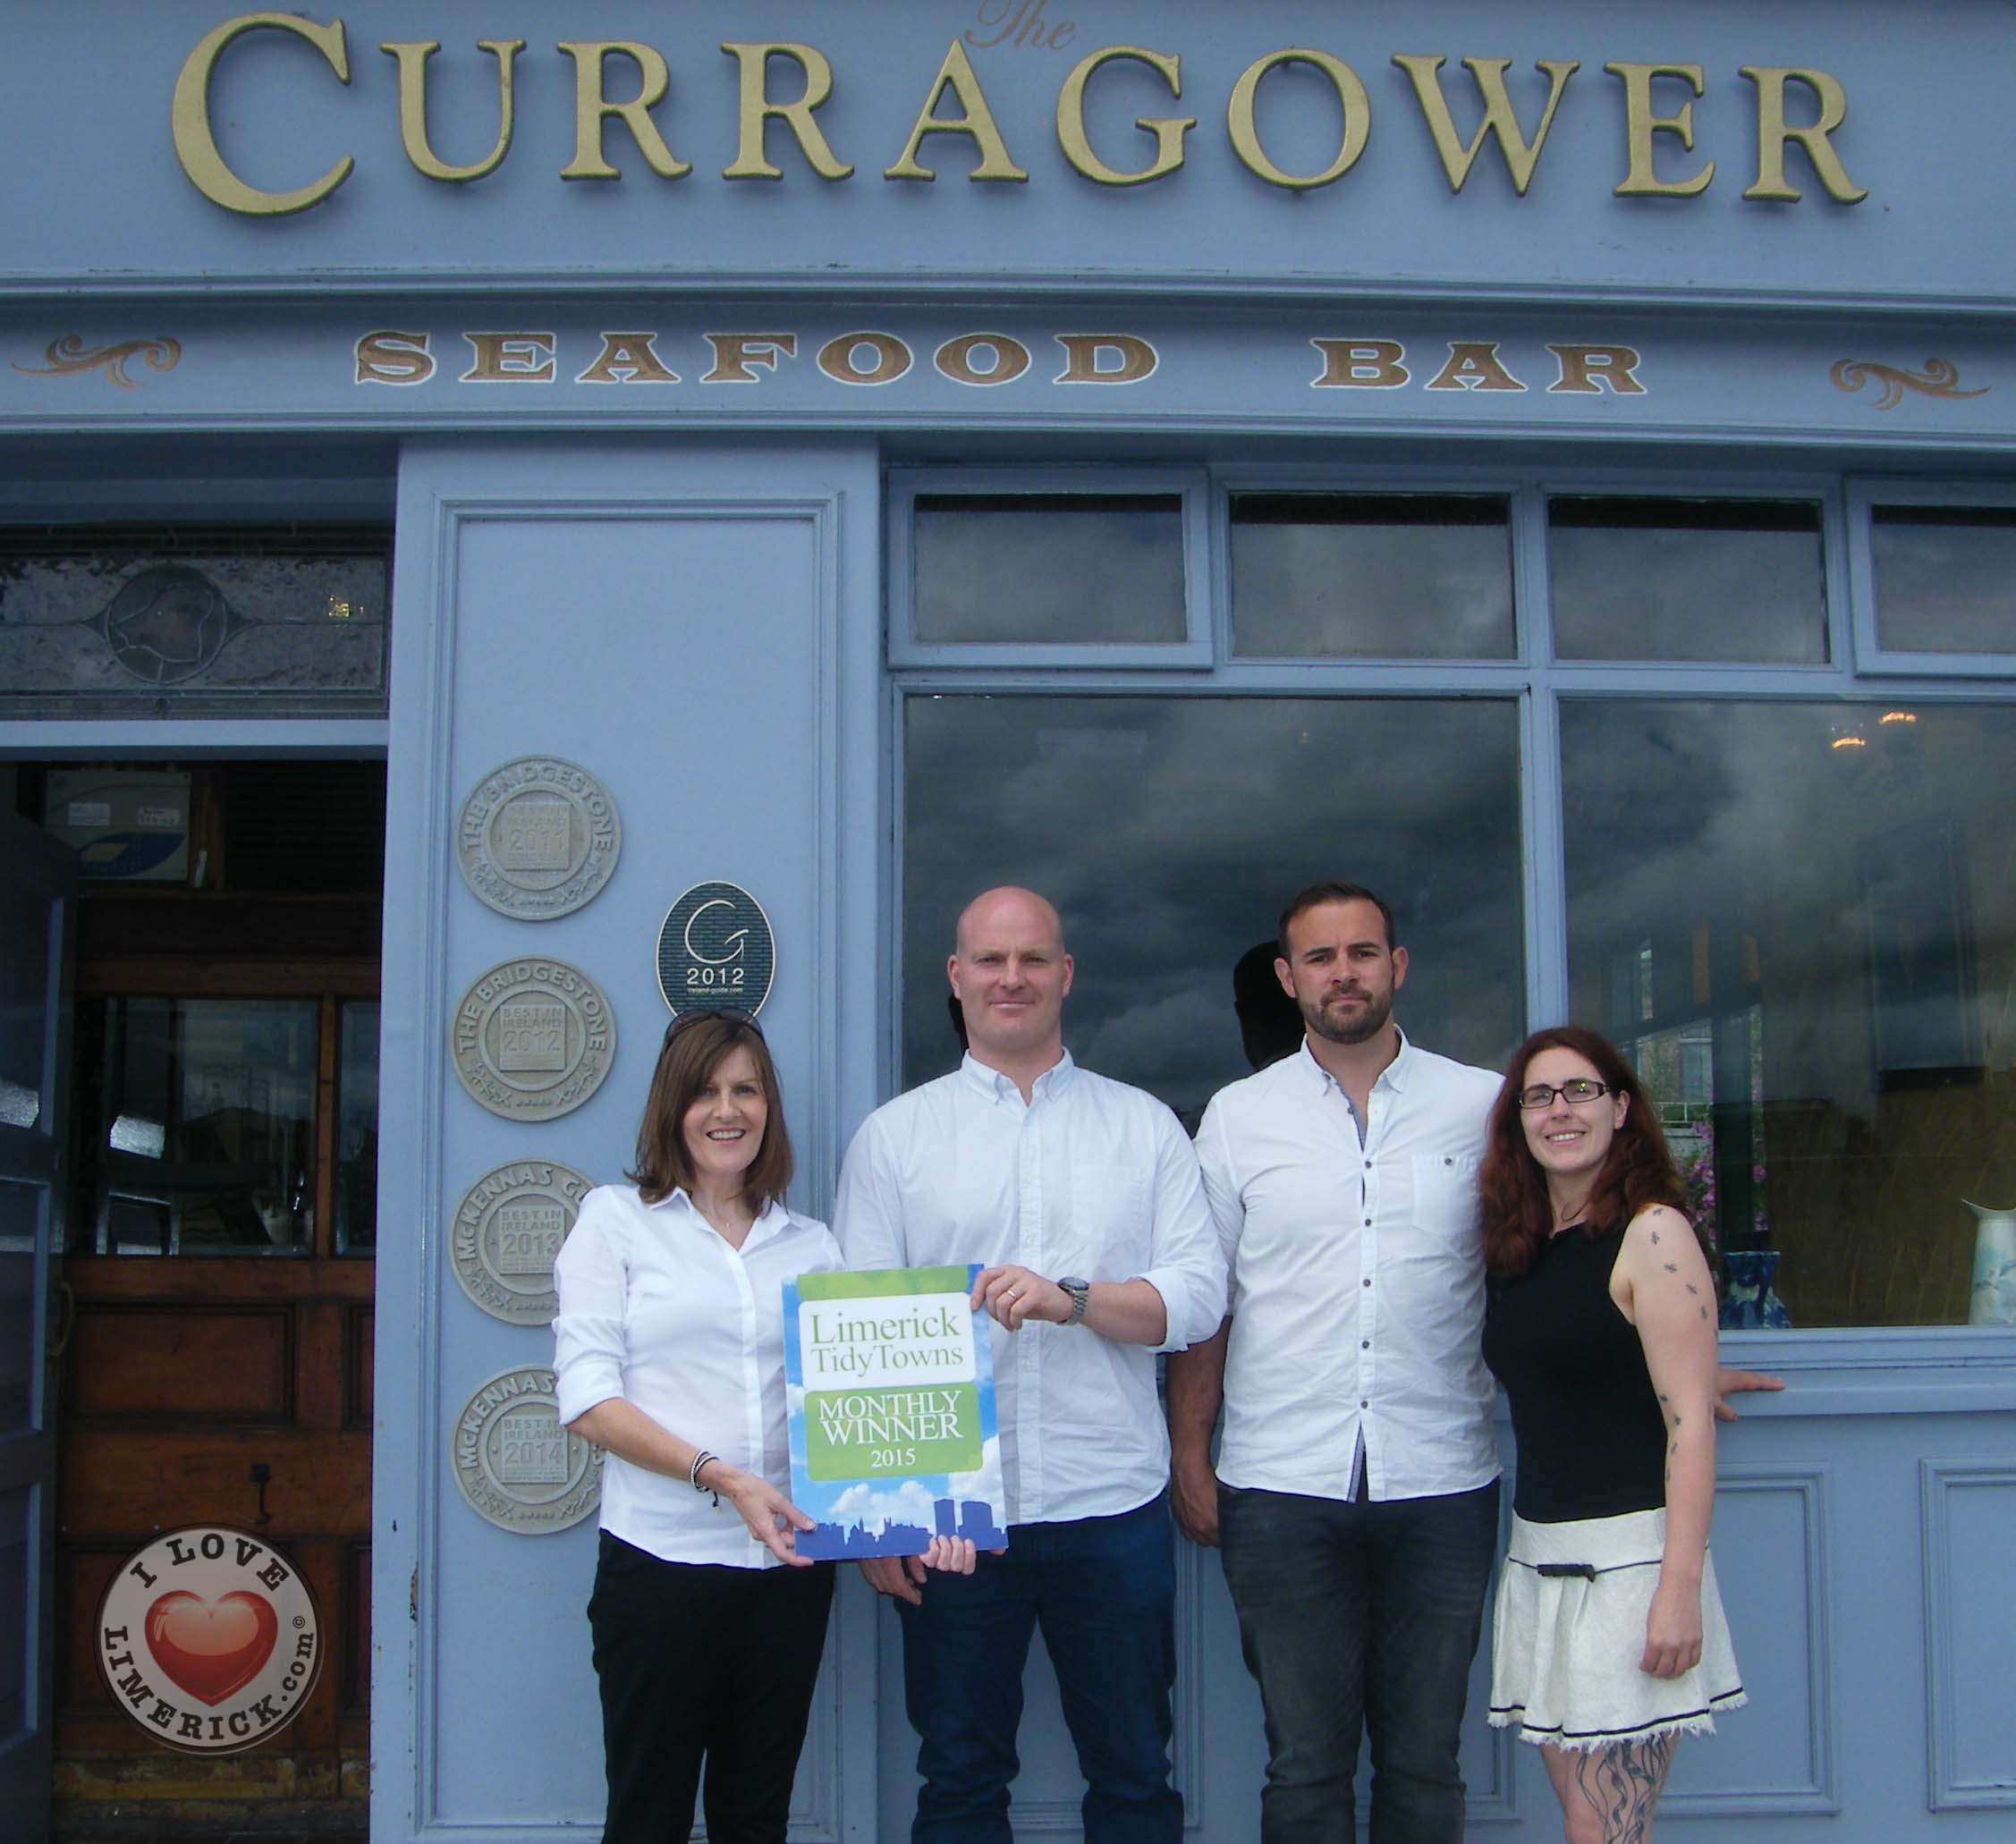 The Curragower seafood bar wins award from Limerick Tidy Towns for August